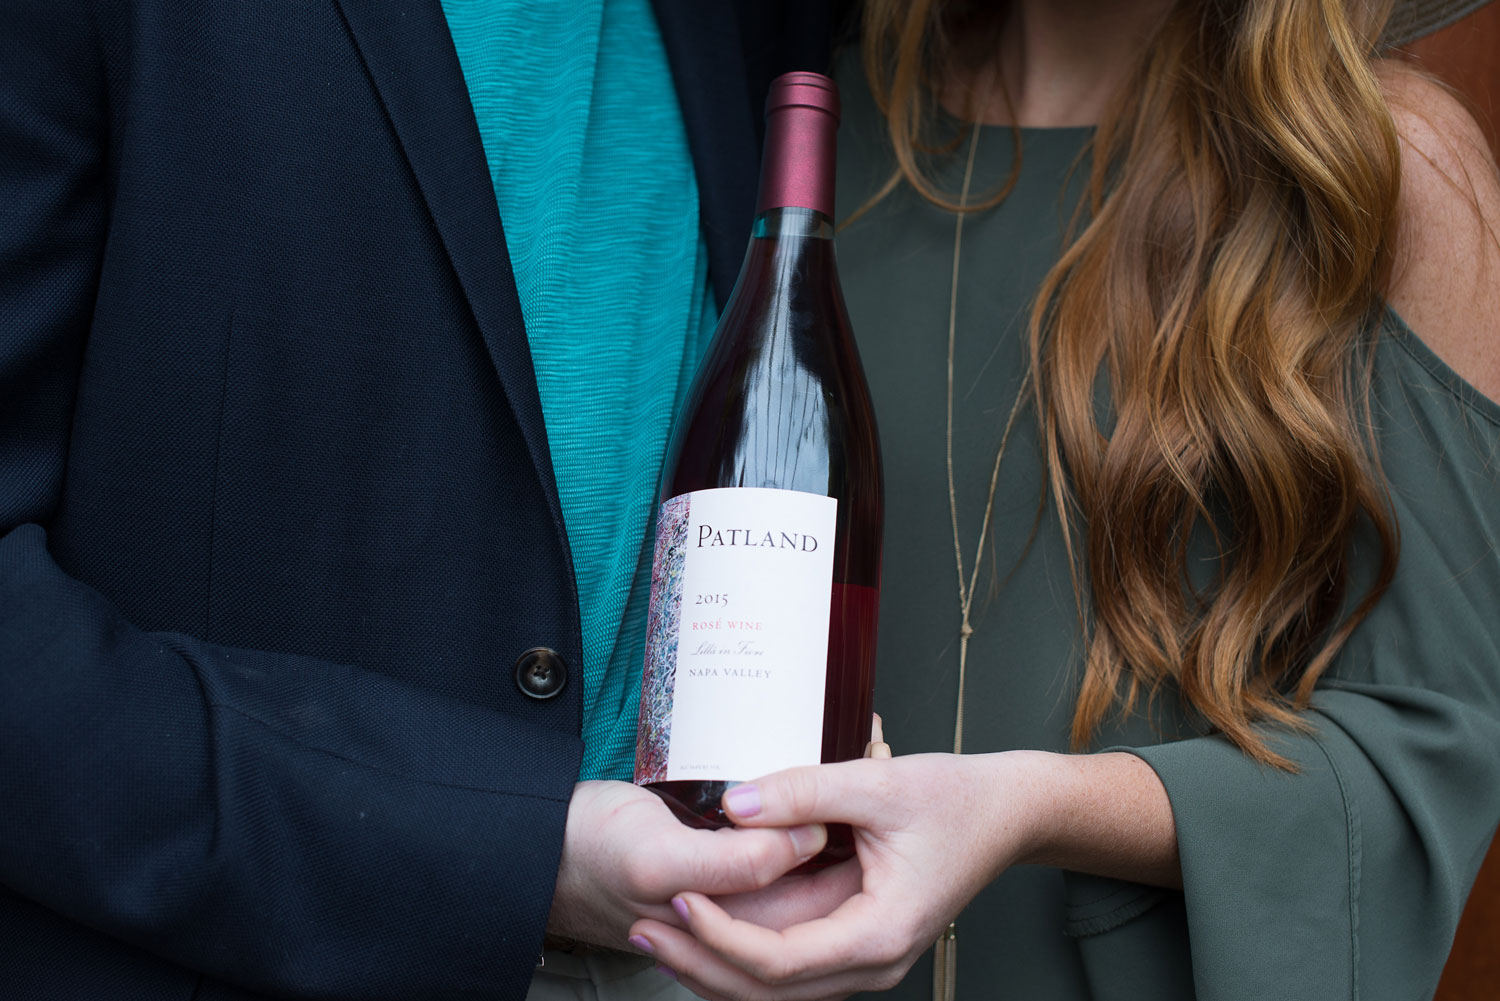 Bride and groom with bottle of wine from winery where groom proposed